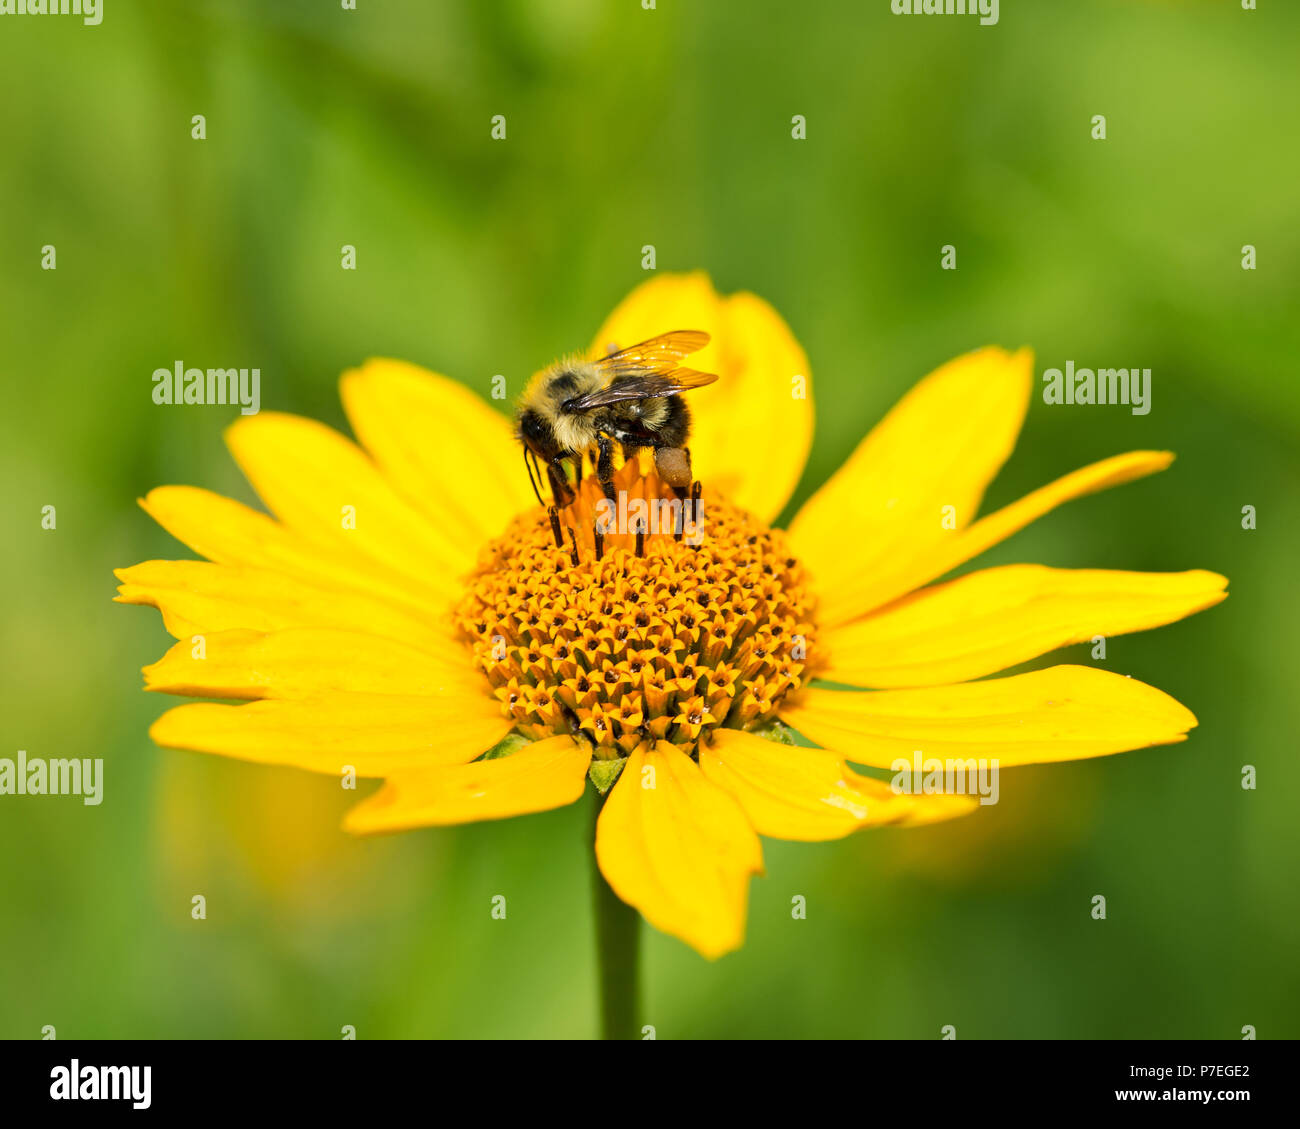 Bee Pollinates Blooming Bright Yellow Flower Of Cut Leaf Coneflower